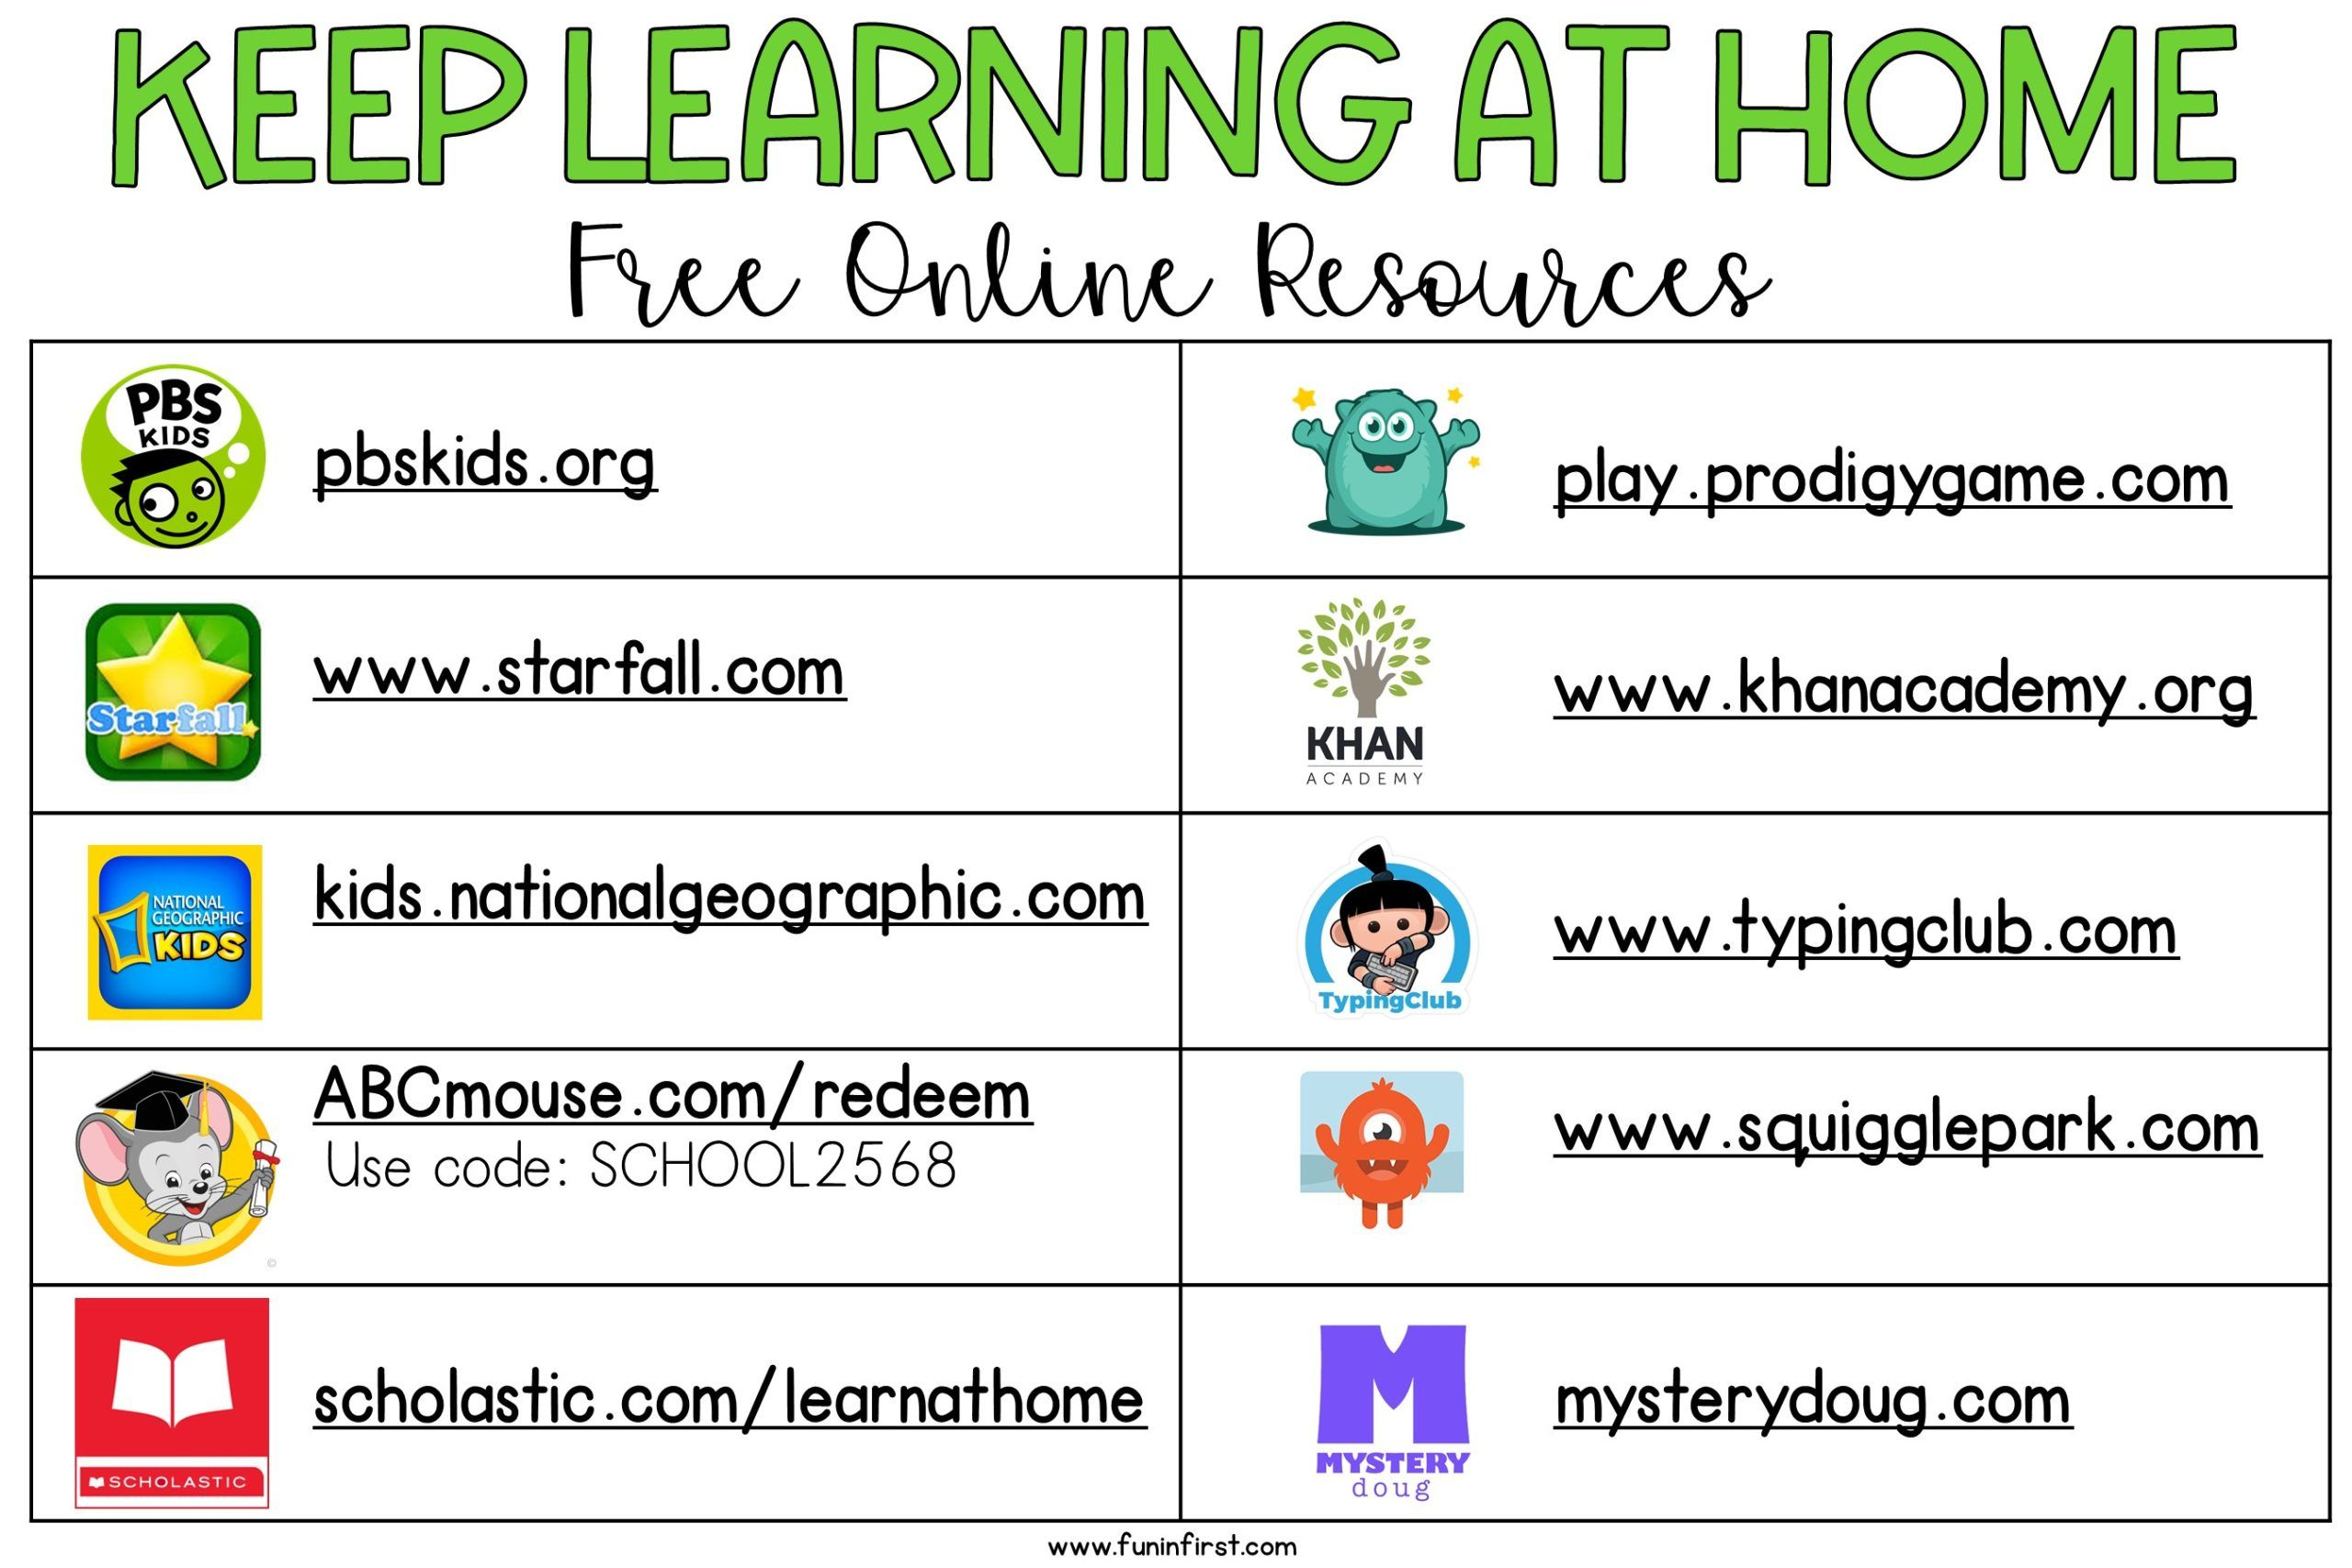 Free Online Resources for Learning at Home Learning